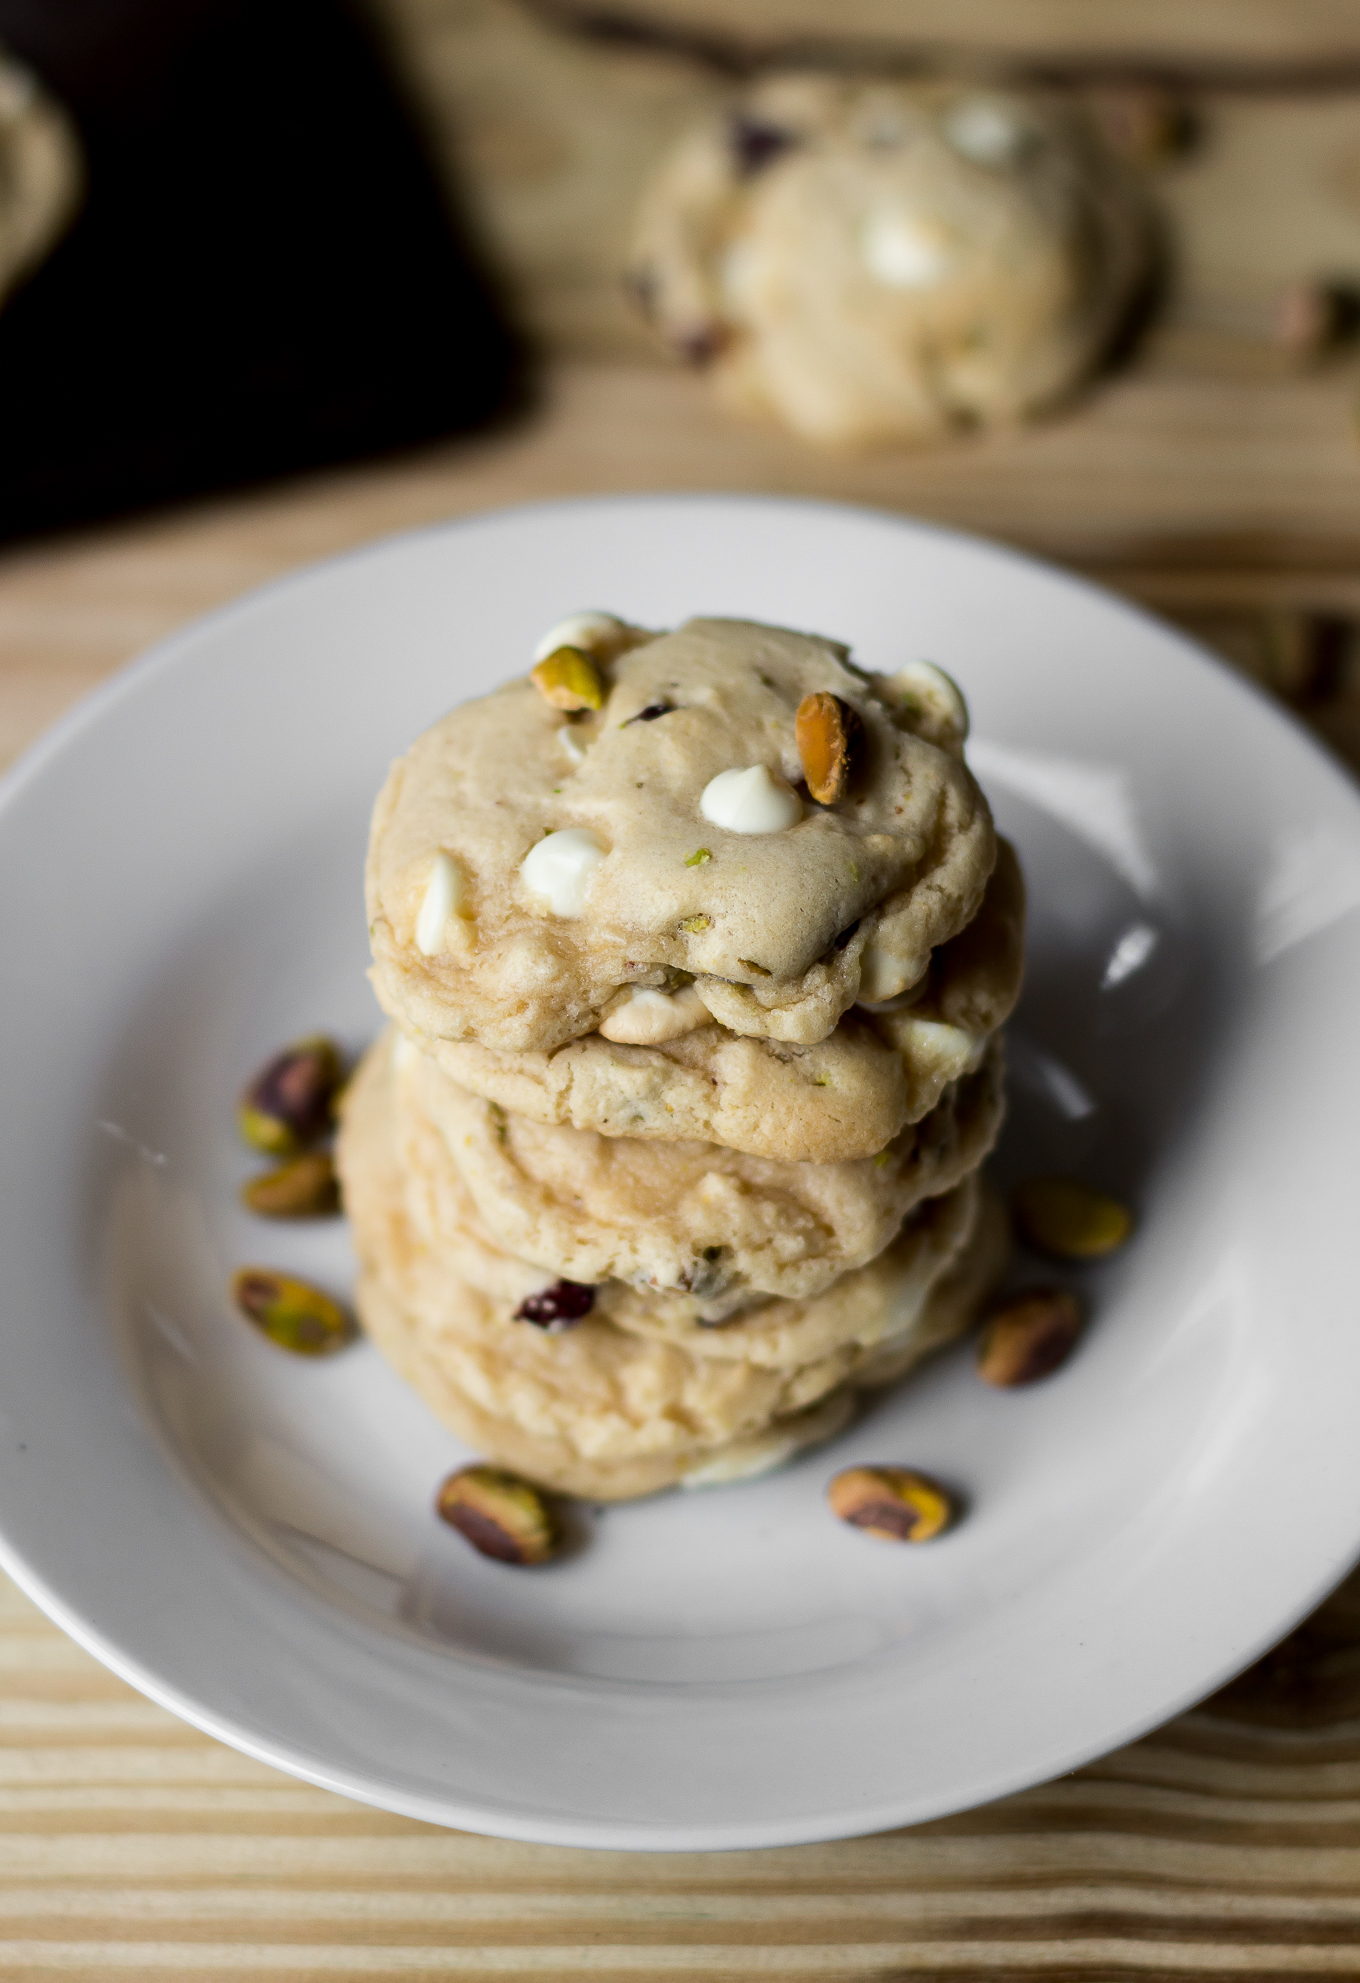 Cranberry White Chocolate Chip Pistachio Cookies | The Kentucky Gent